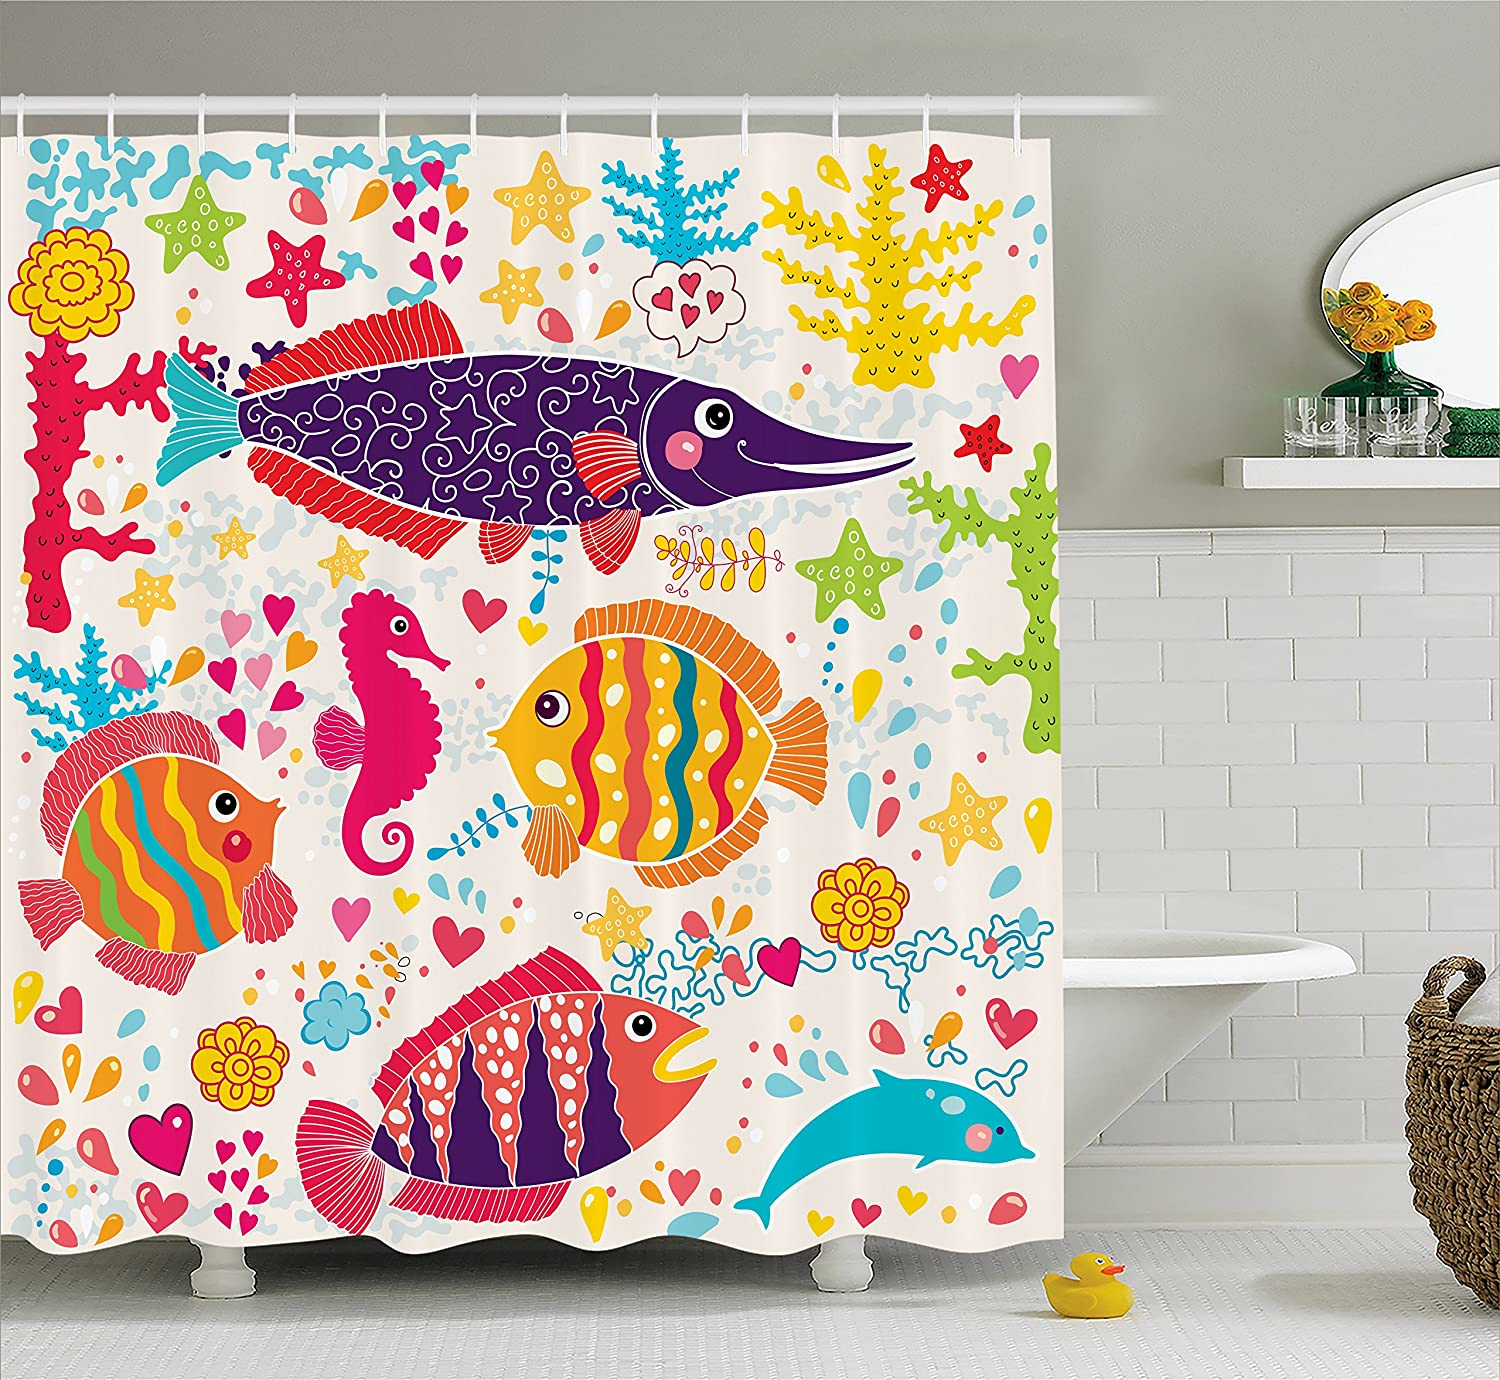 Ambesonne Sea Animals Shower Curtain, Cartoon Art with Fish Seahorse Starfish Dolphin Coral Underwater Life Kids, Fabric Bathroom Decor Set with Hooks, 70 Inches, Multicolor